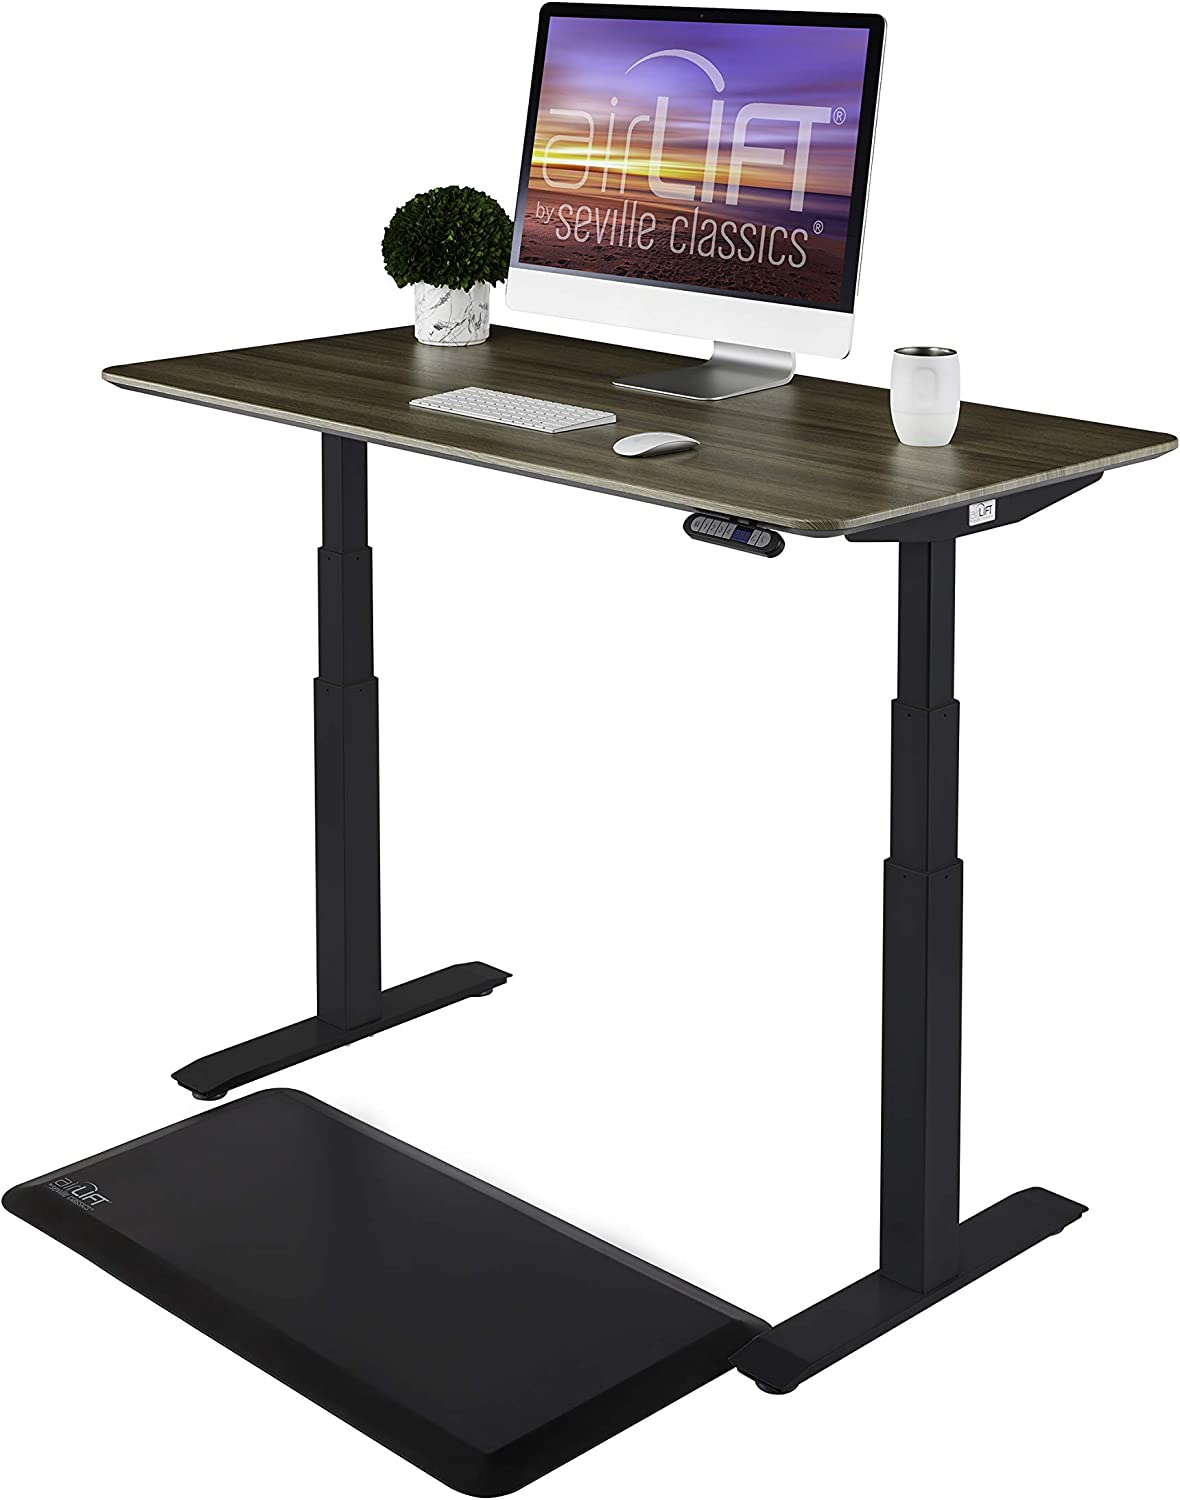 """Seville Classics AIRLIFT Pro S3 54"""" Solid-Top Commercial-Grade Electric Adjustable Standing Desk (51.4"""" Max Height) Table - Black/Ashwood"""